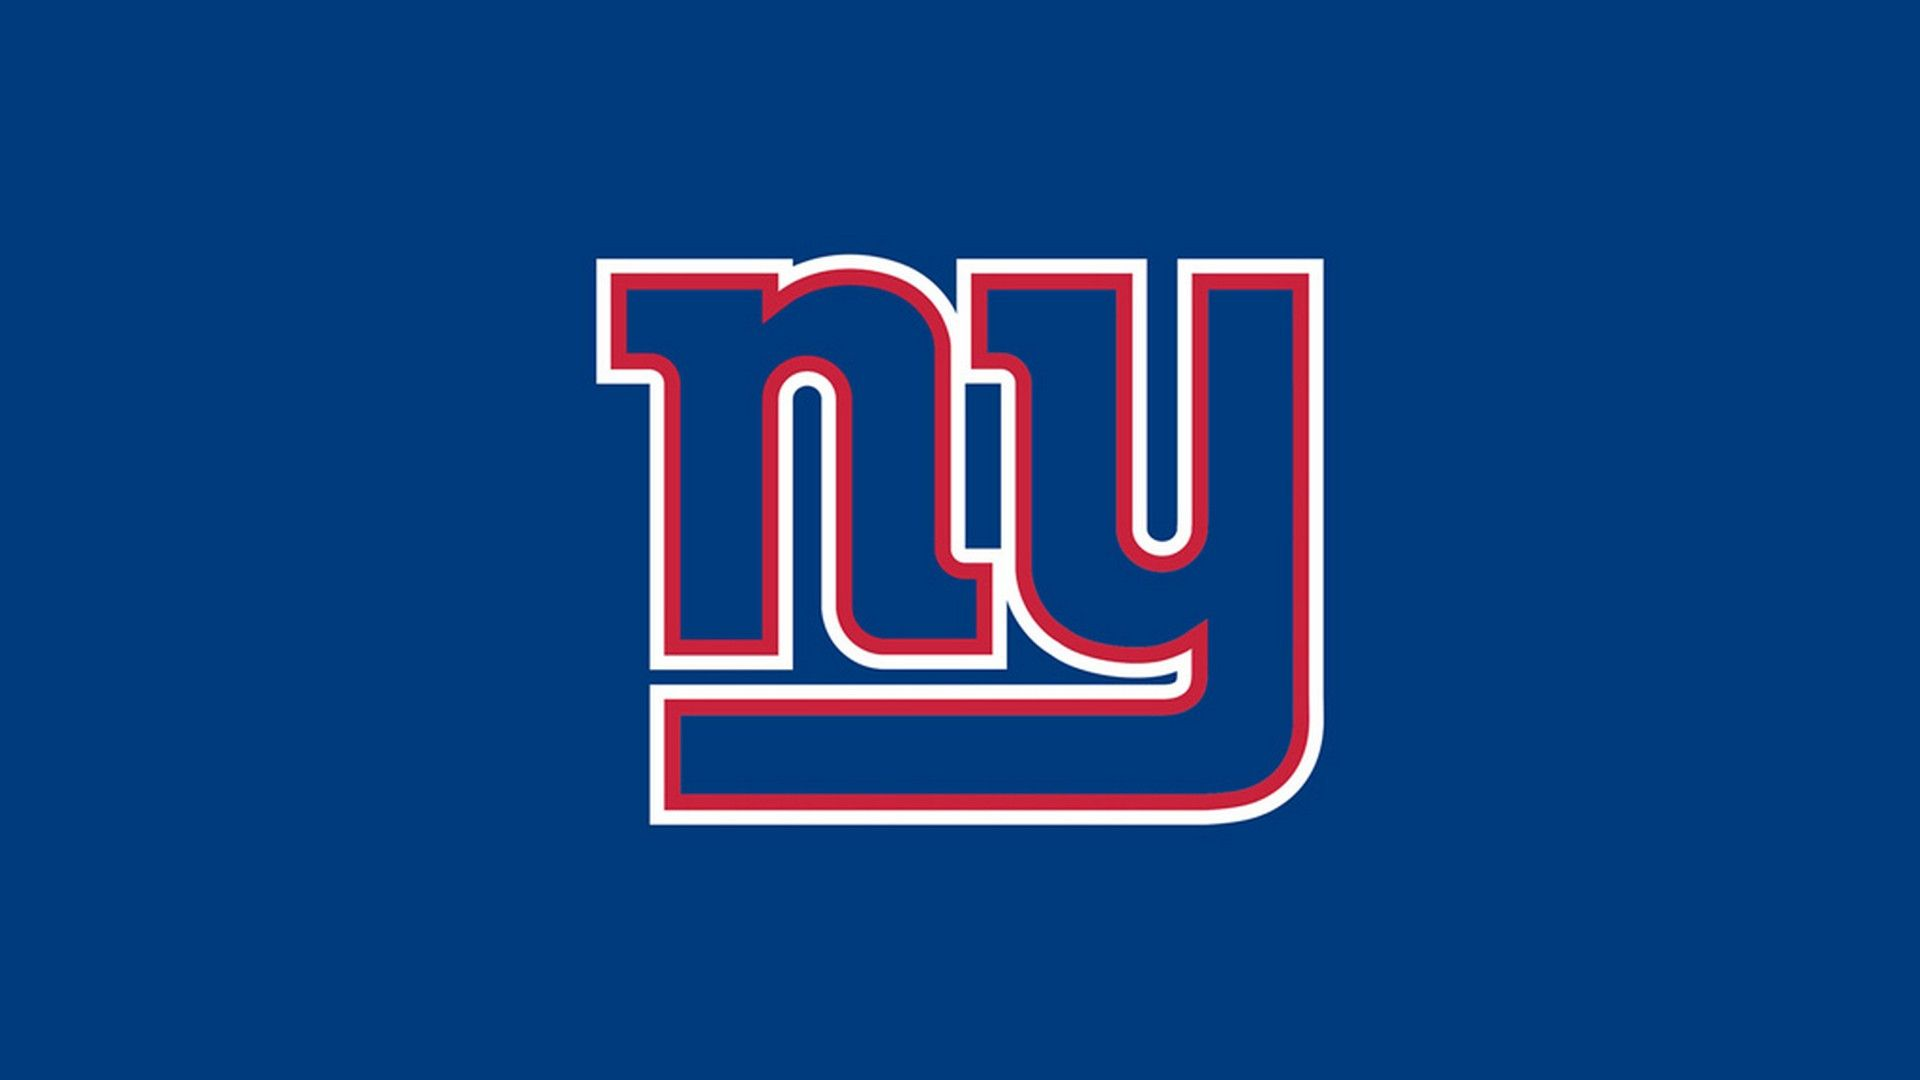 New York Giants Desktop Wallpaper 2020 Nfl Football Wallpapers Ny Giants Football New York Giants Football New York Giants